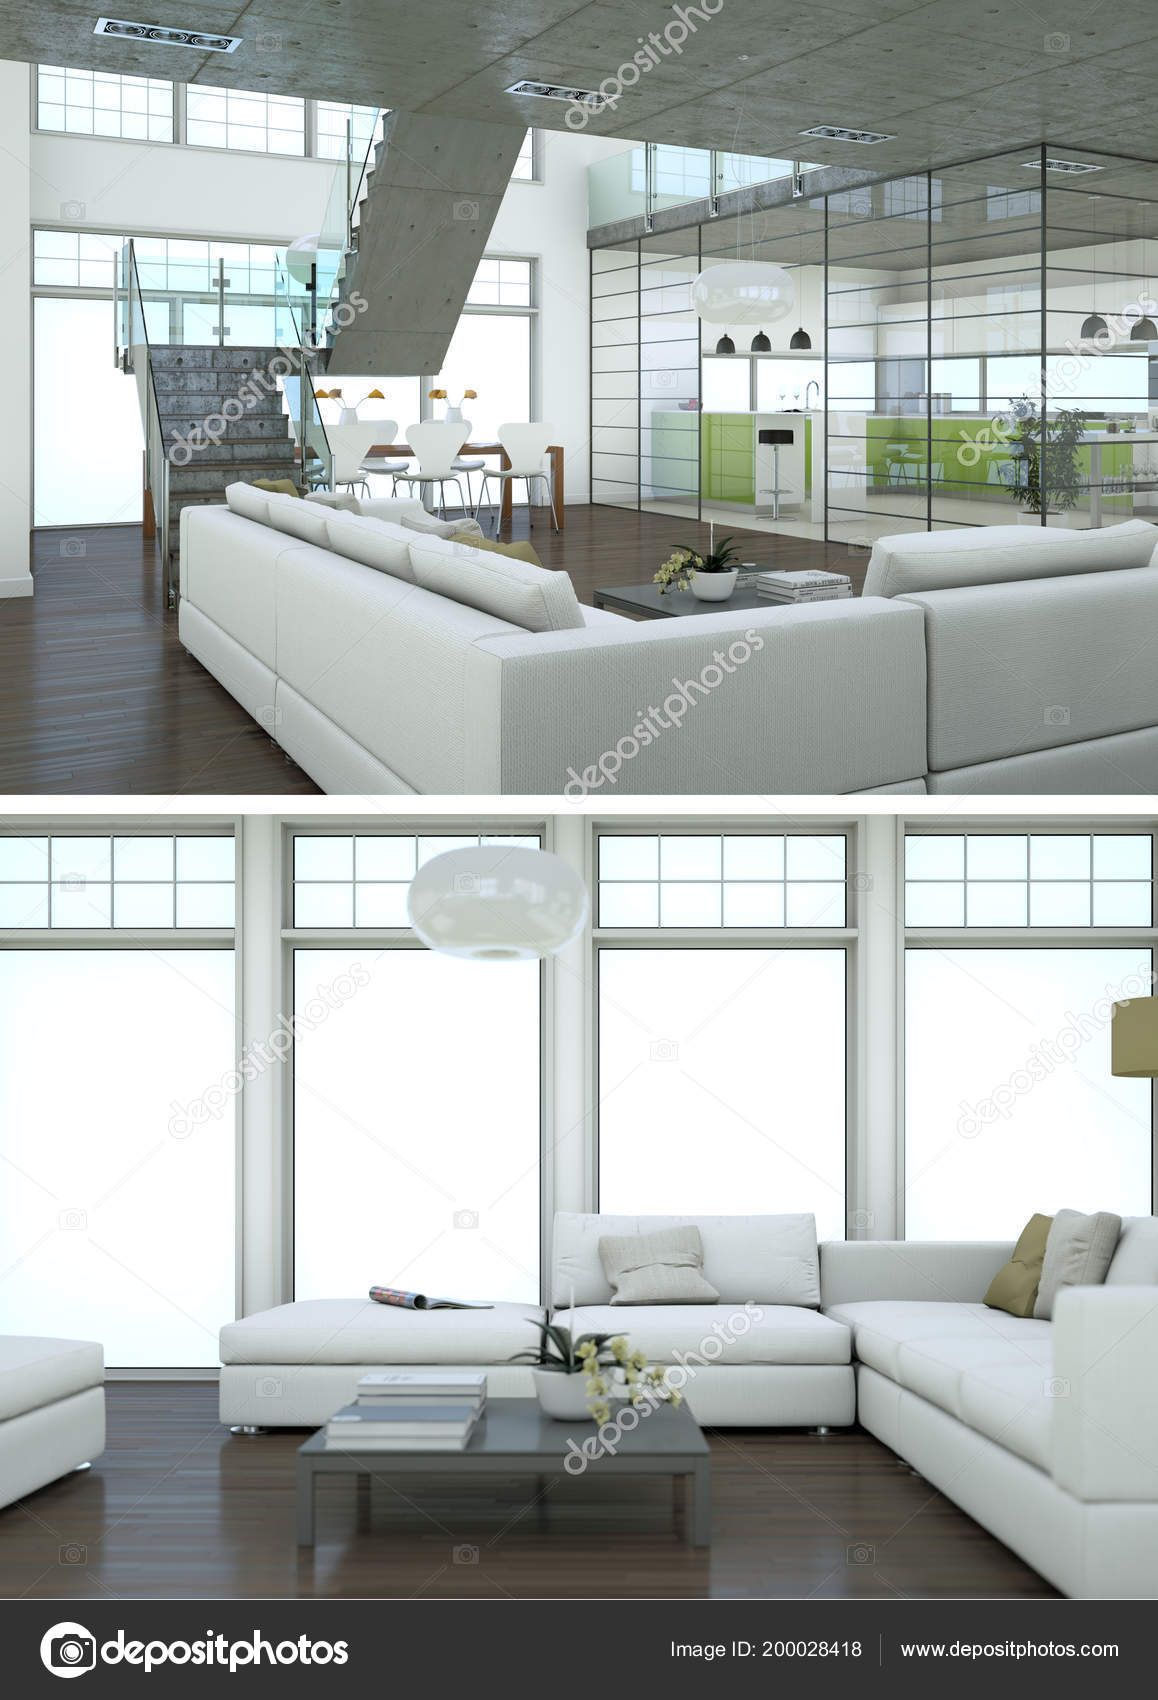 Two Views Of Modern Interior Loft Design With Green Sofas U2014 Stock Photo